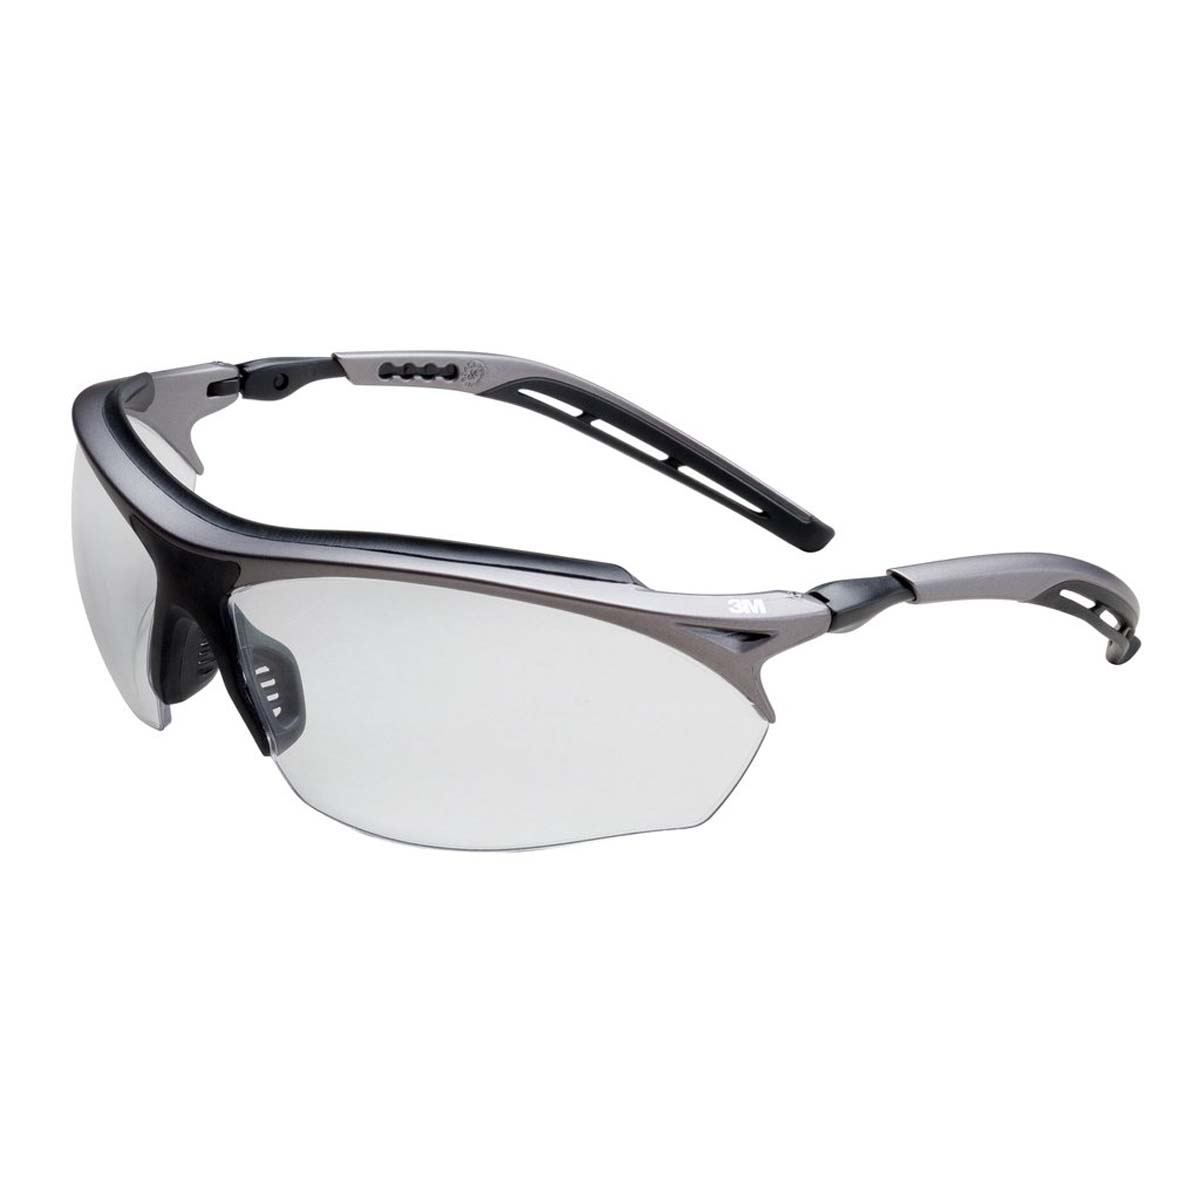 "3Mâ""¢ Maximâ""¢ GT Protective Eyewear 14246-00000-20 Clear Anti-Fog Lens, Metallic Gray and Black Frame Color"